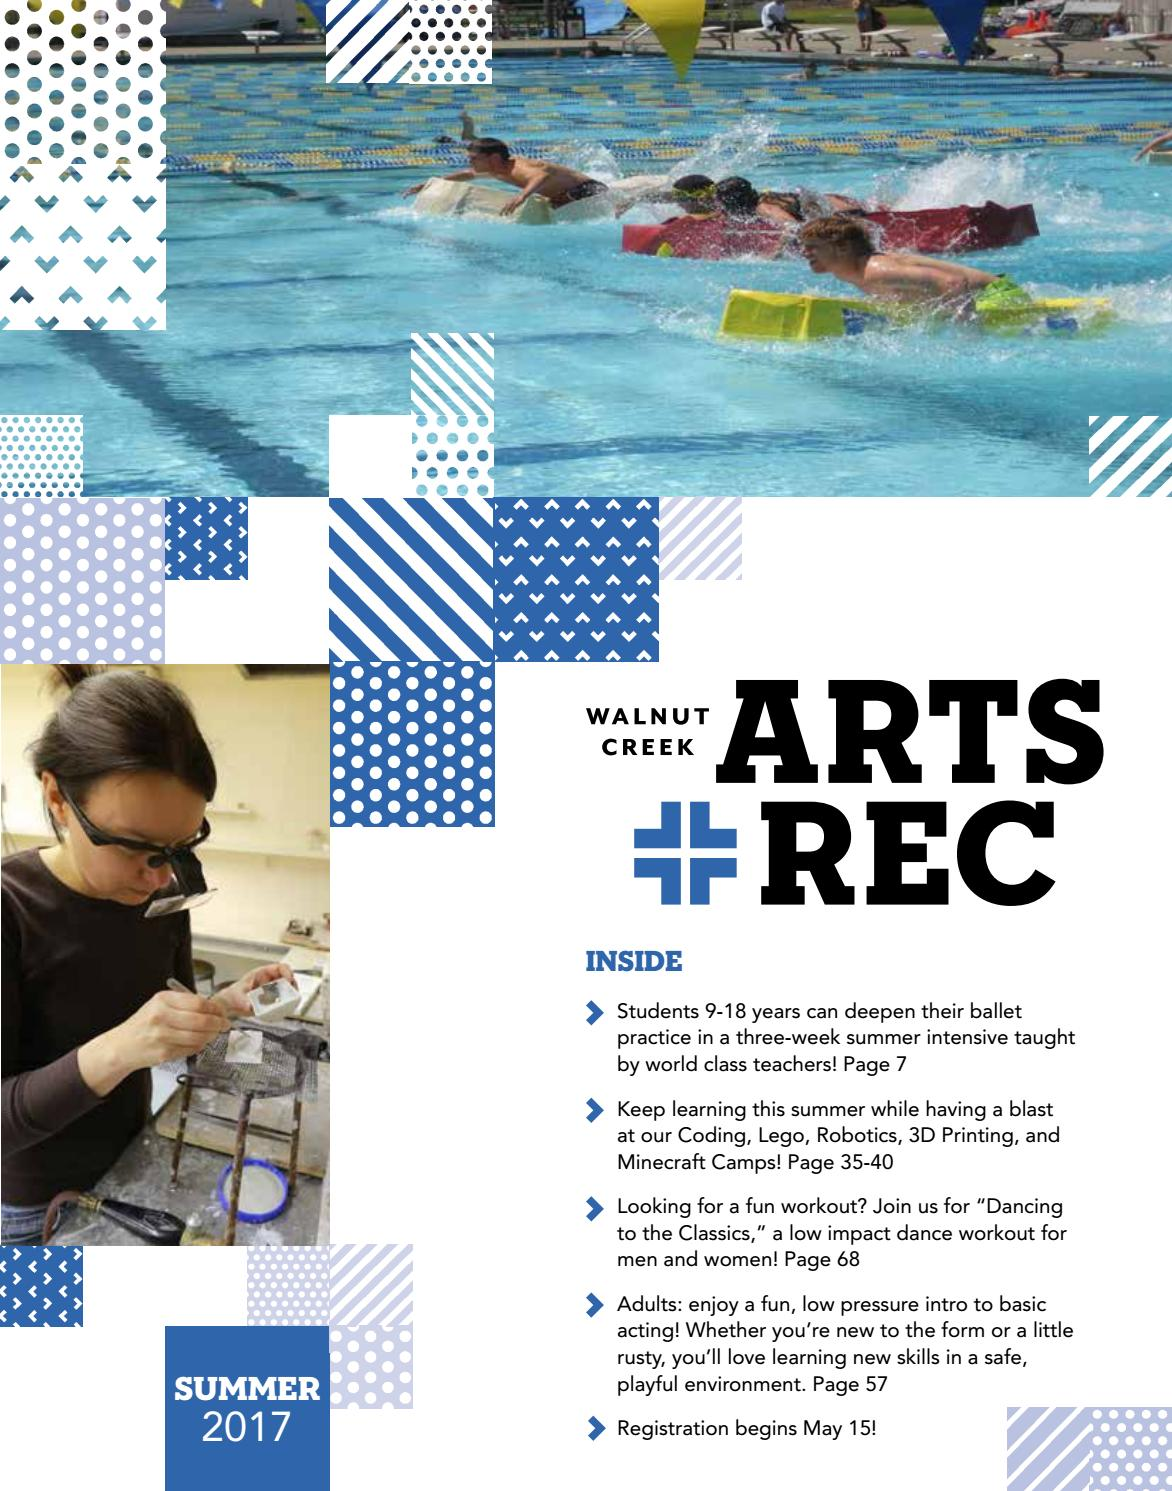 b65dde782a26d City of Walnut Creek Guide to Arts + Rec - Summer 2017 by City of Walnut  Creek - issuu